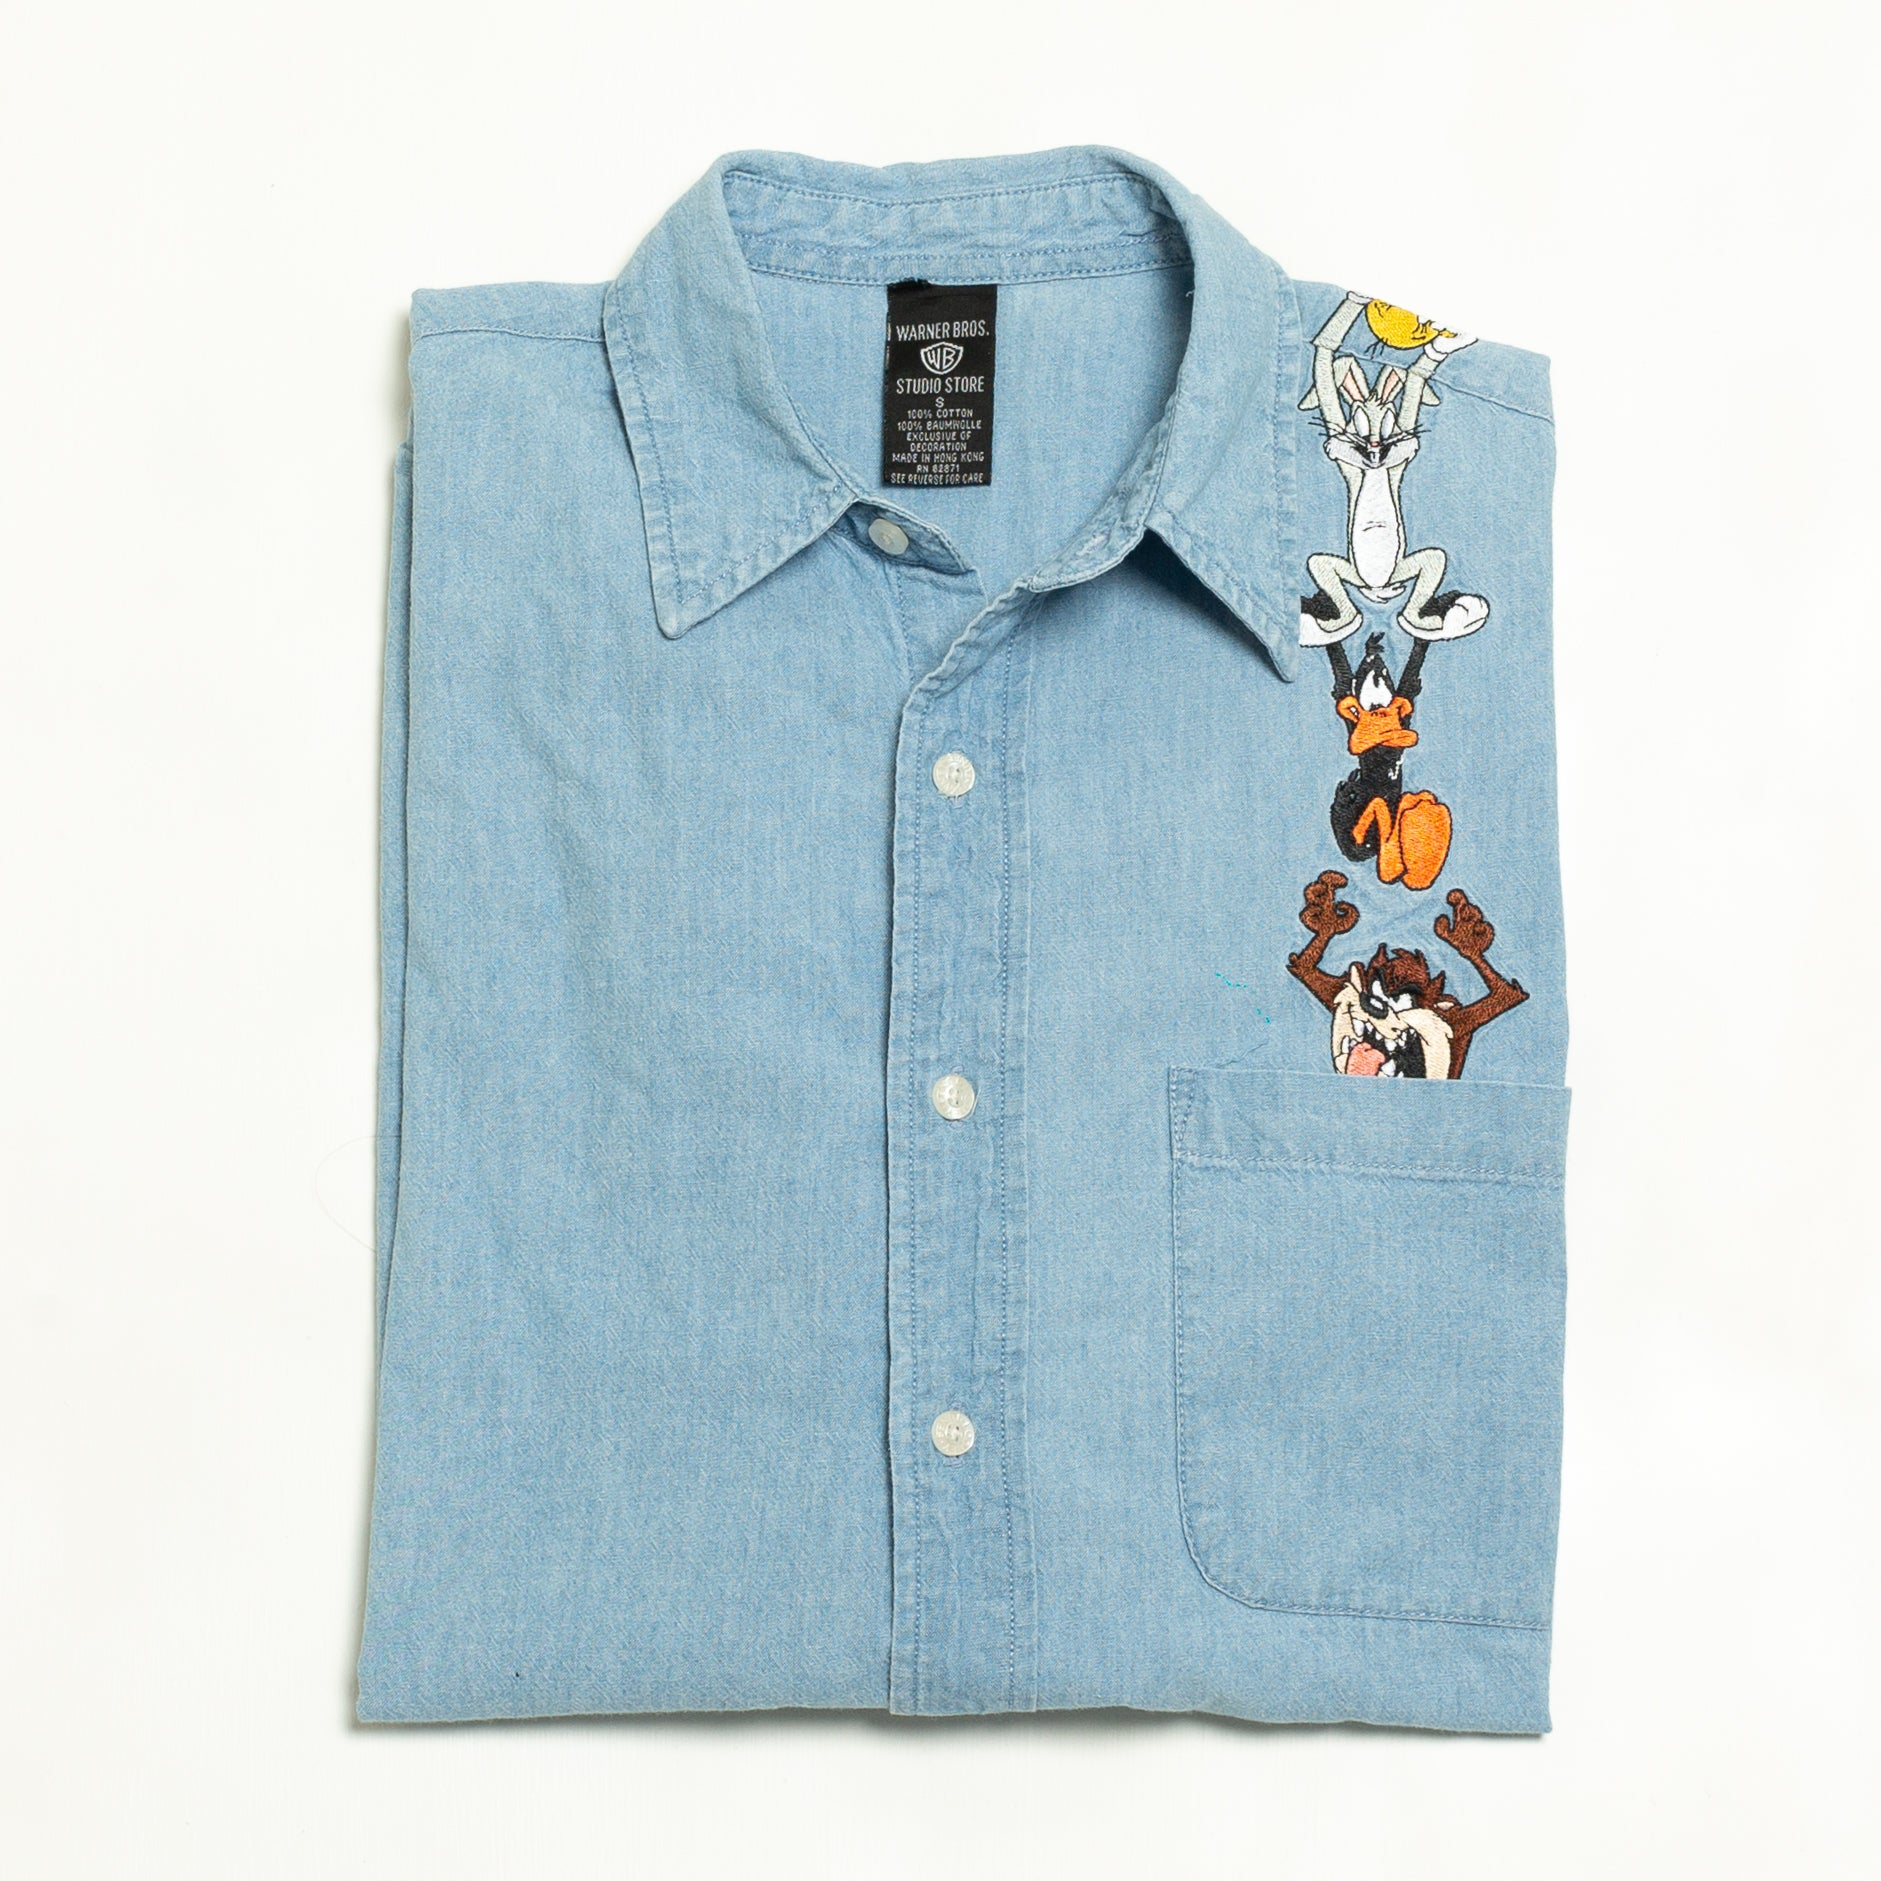 1998 Looney Tunes Denim Button Up Long Sleeve Shirt